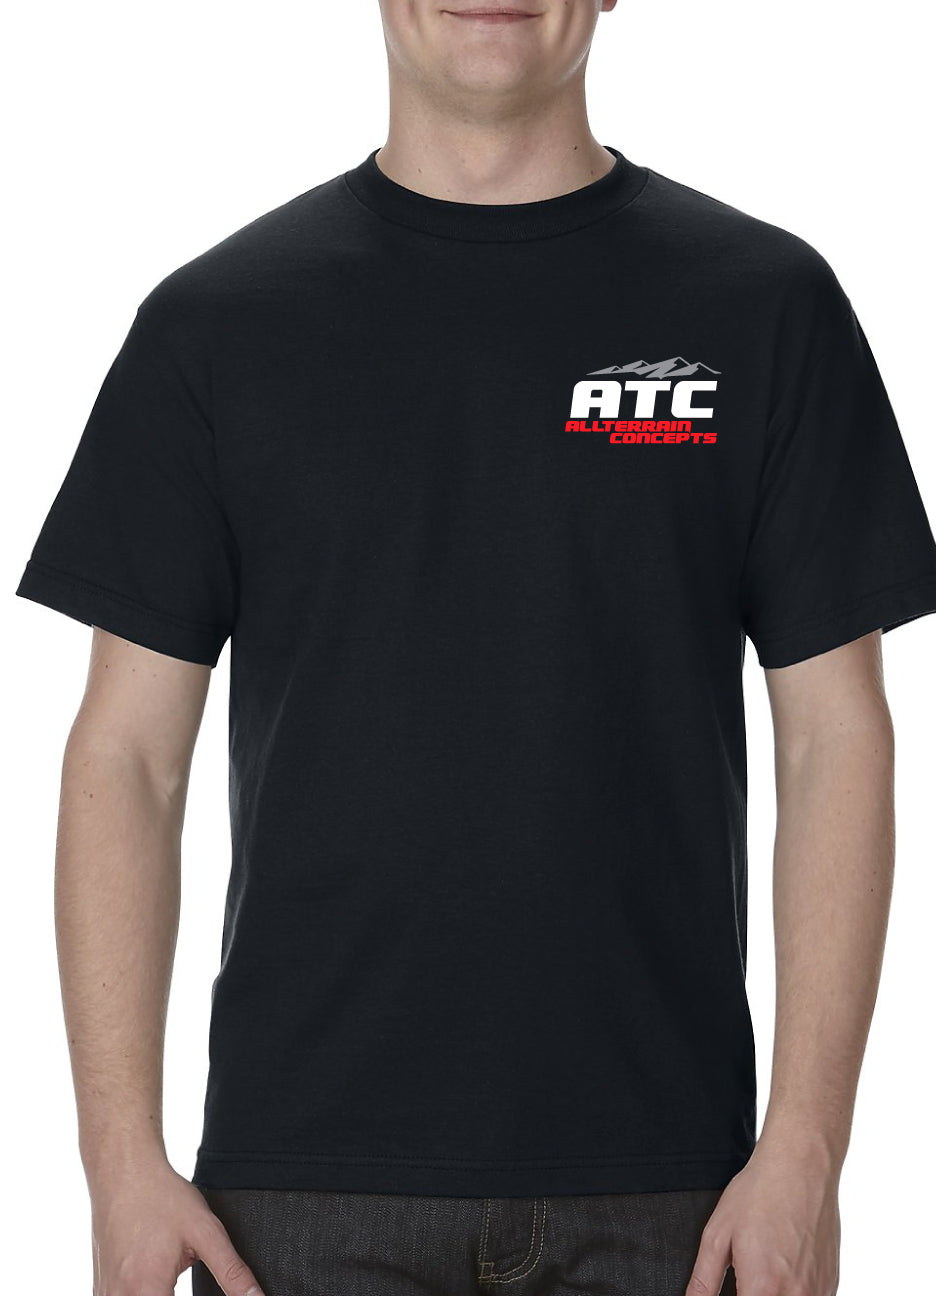 Short Sleeve ATC T Shirt